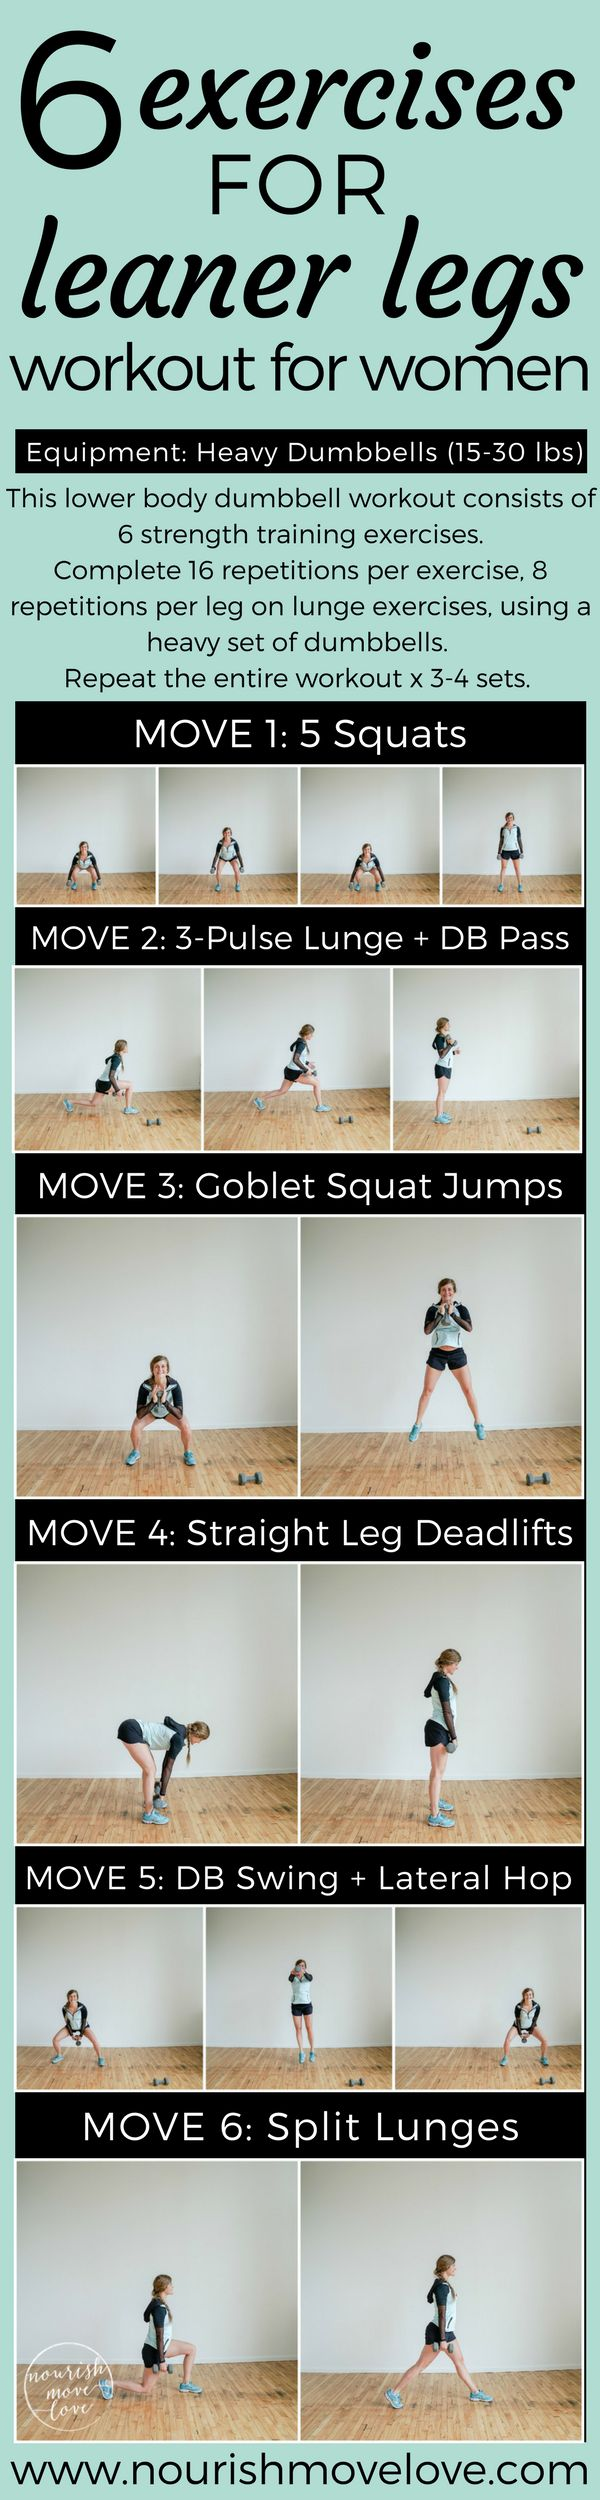 Build lean, strong legs with this strictly strength lower body dumbbell workout. Leg day workout pairing strength exercises with weight plyometrics. 6 exercises, repeat 3-4 sets, heavy set of dumbbells. At-home workout for glutes, butt, legs, thighs. Done